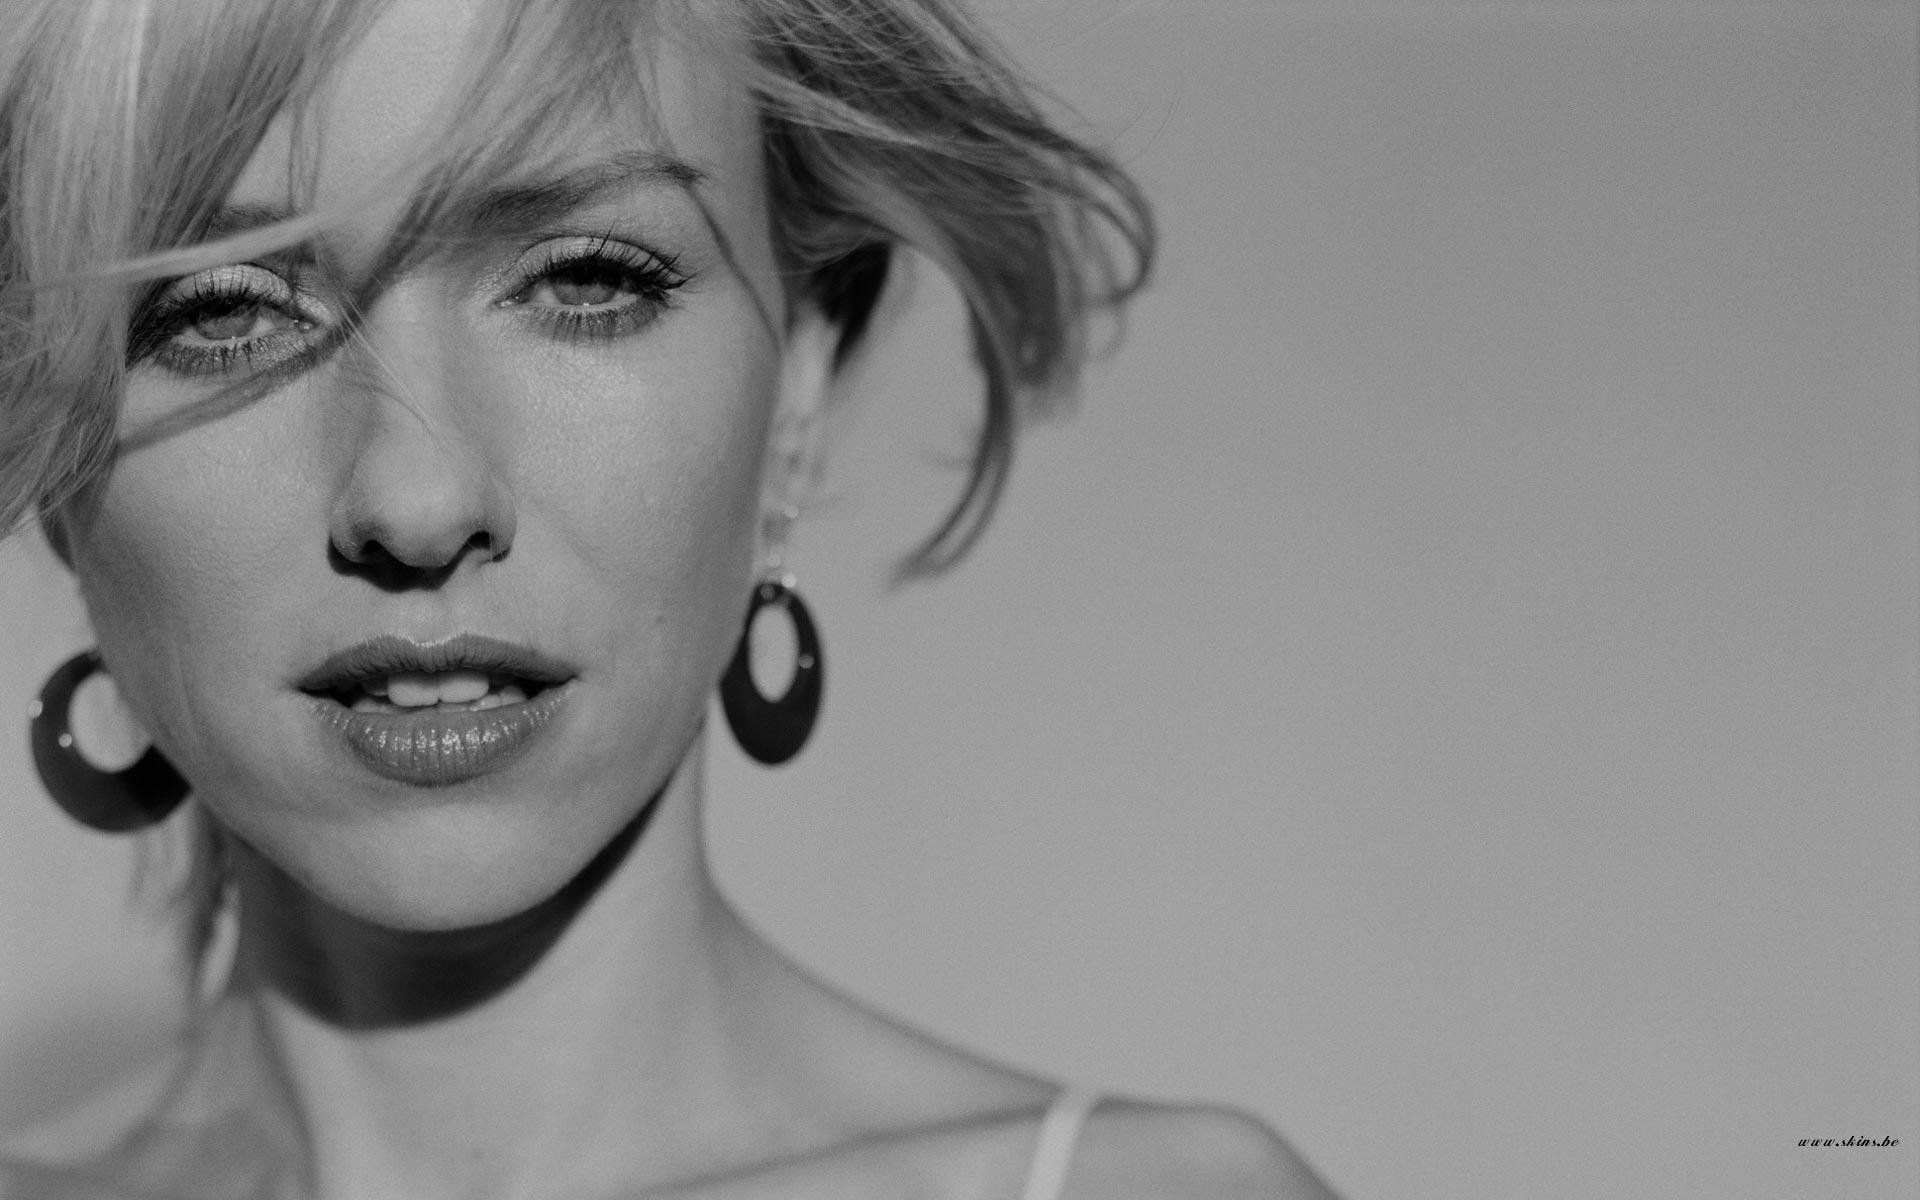 Naomi Watts Computer Wallpapers, Desktop Backgrounds 1920x1200 Id ...